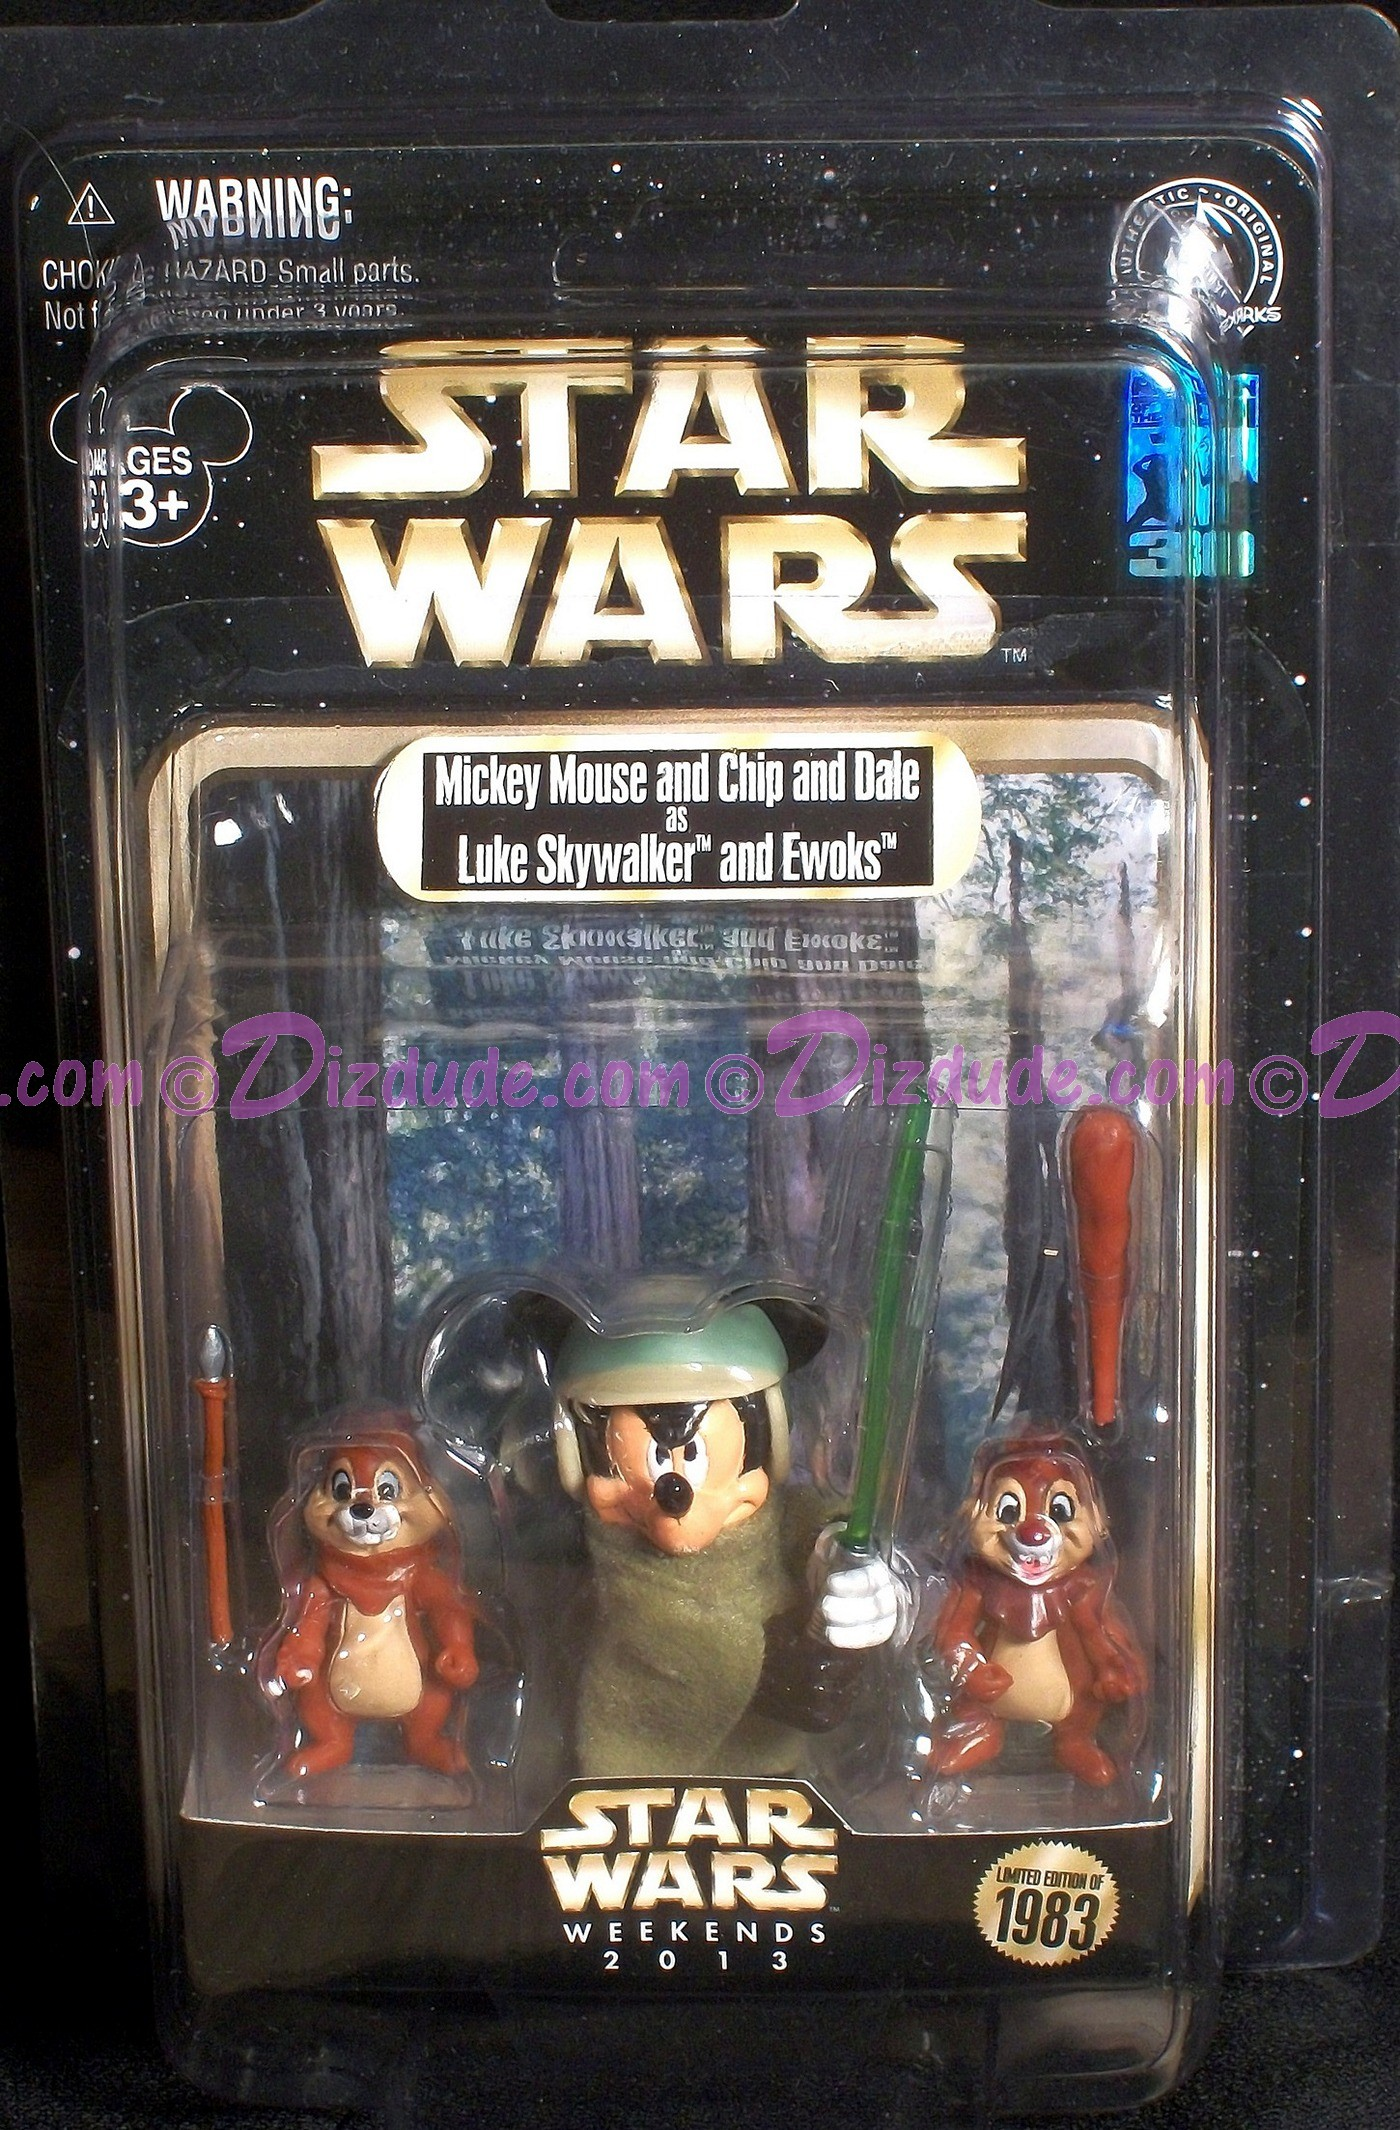 Individually numbered Star Wars Weekends Action Figure Set ~ Mickey Mouse as Luke Skywalker with Chip and Dale as Ewoks Action Figure Set Limited Edition 1983 ~ © Dizdude.com